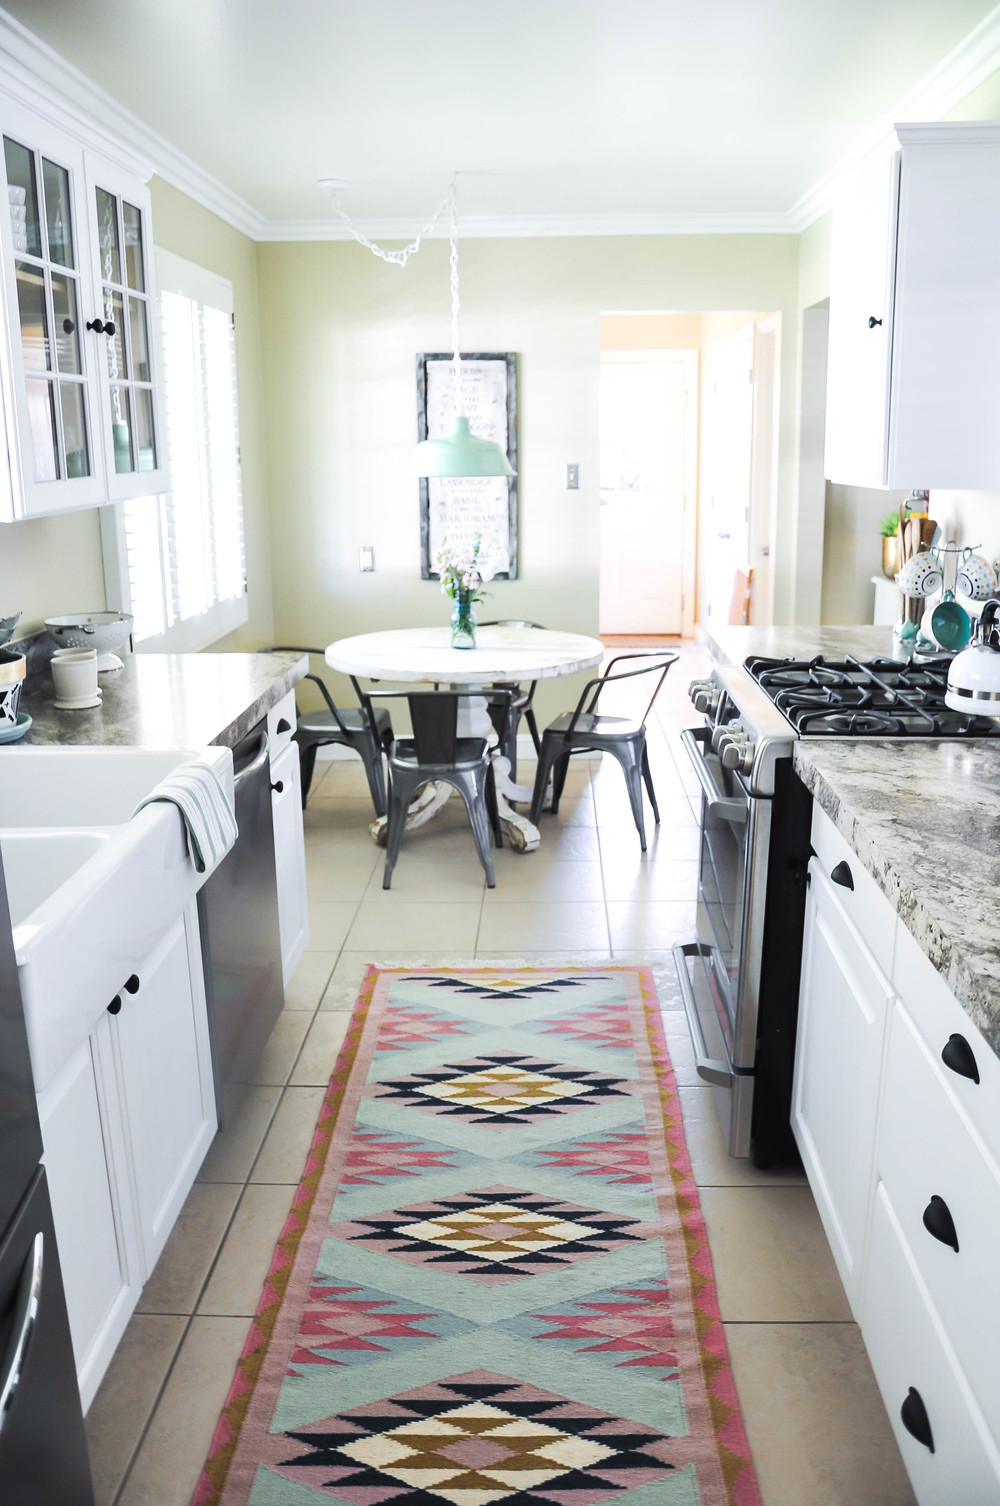 view of remodeled kitchen